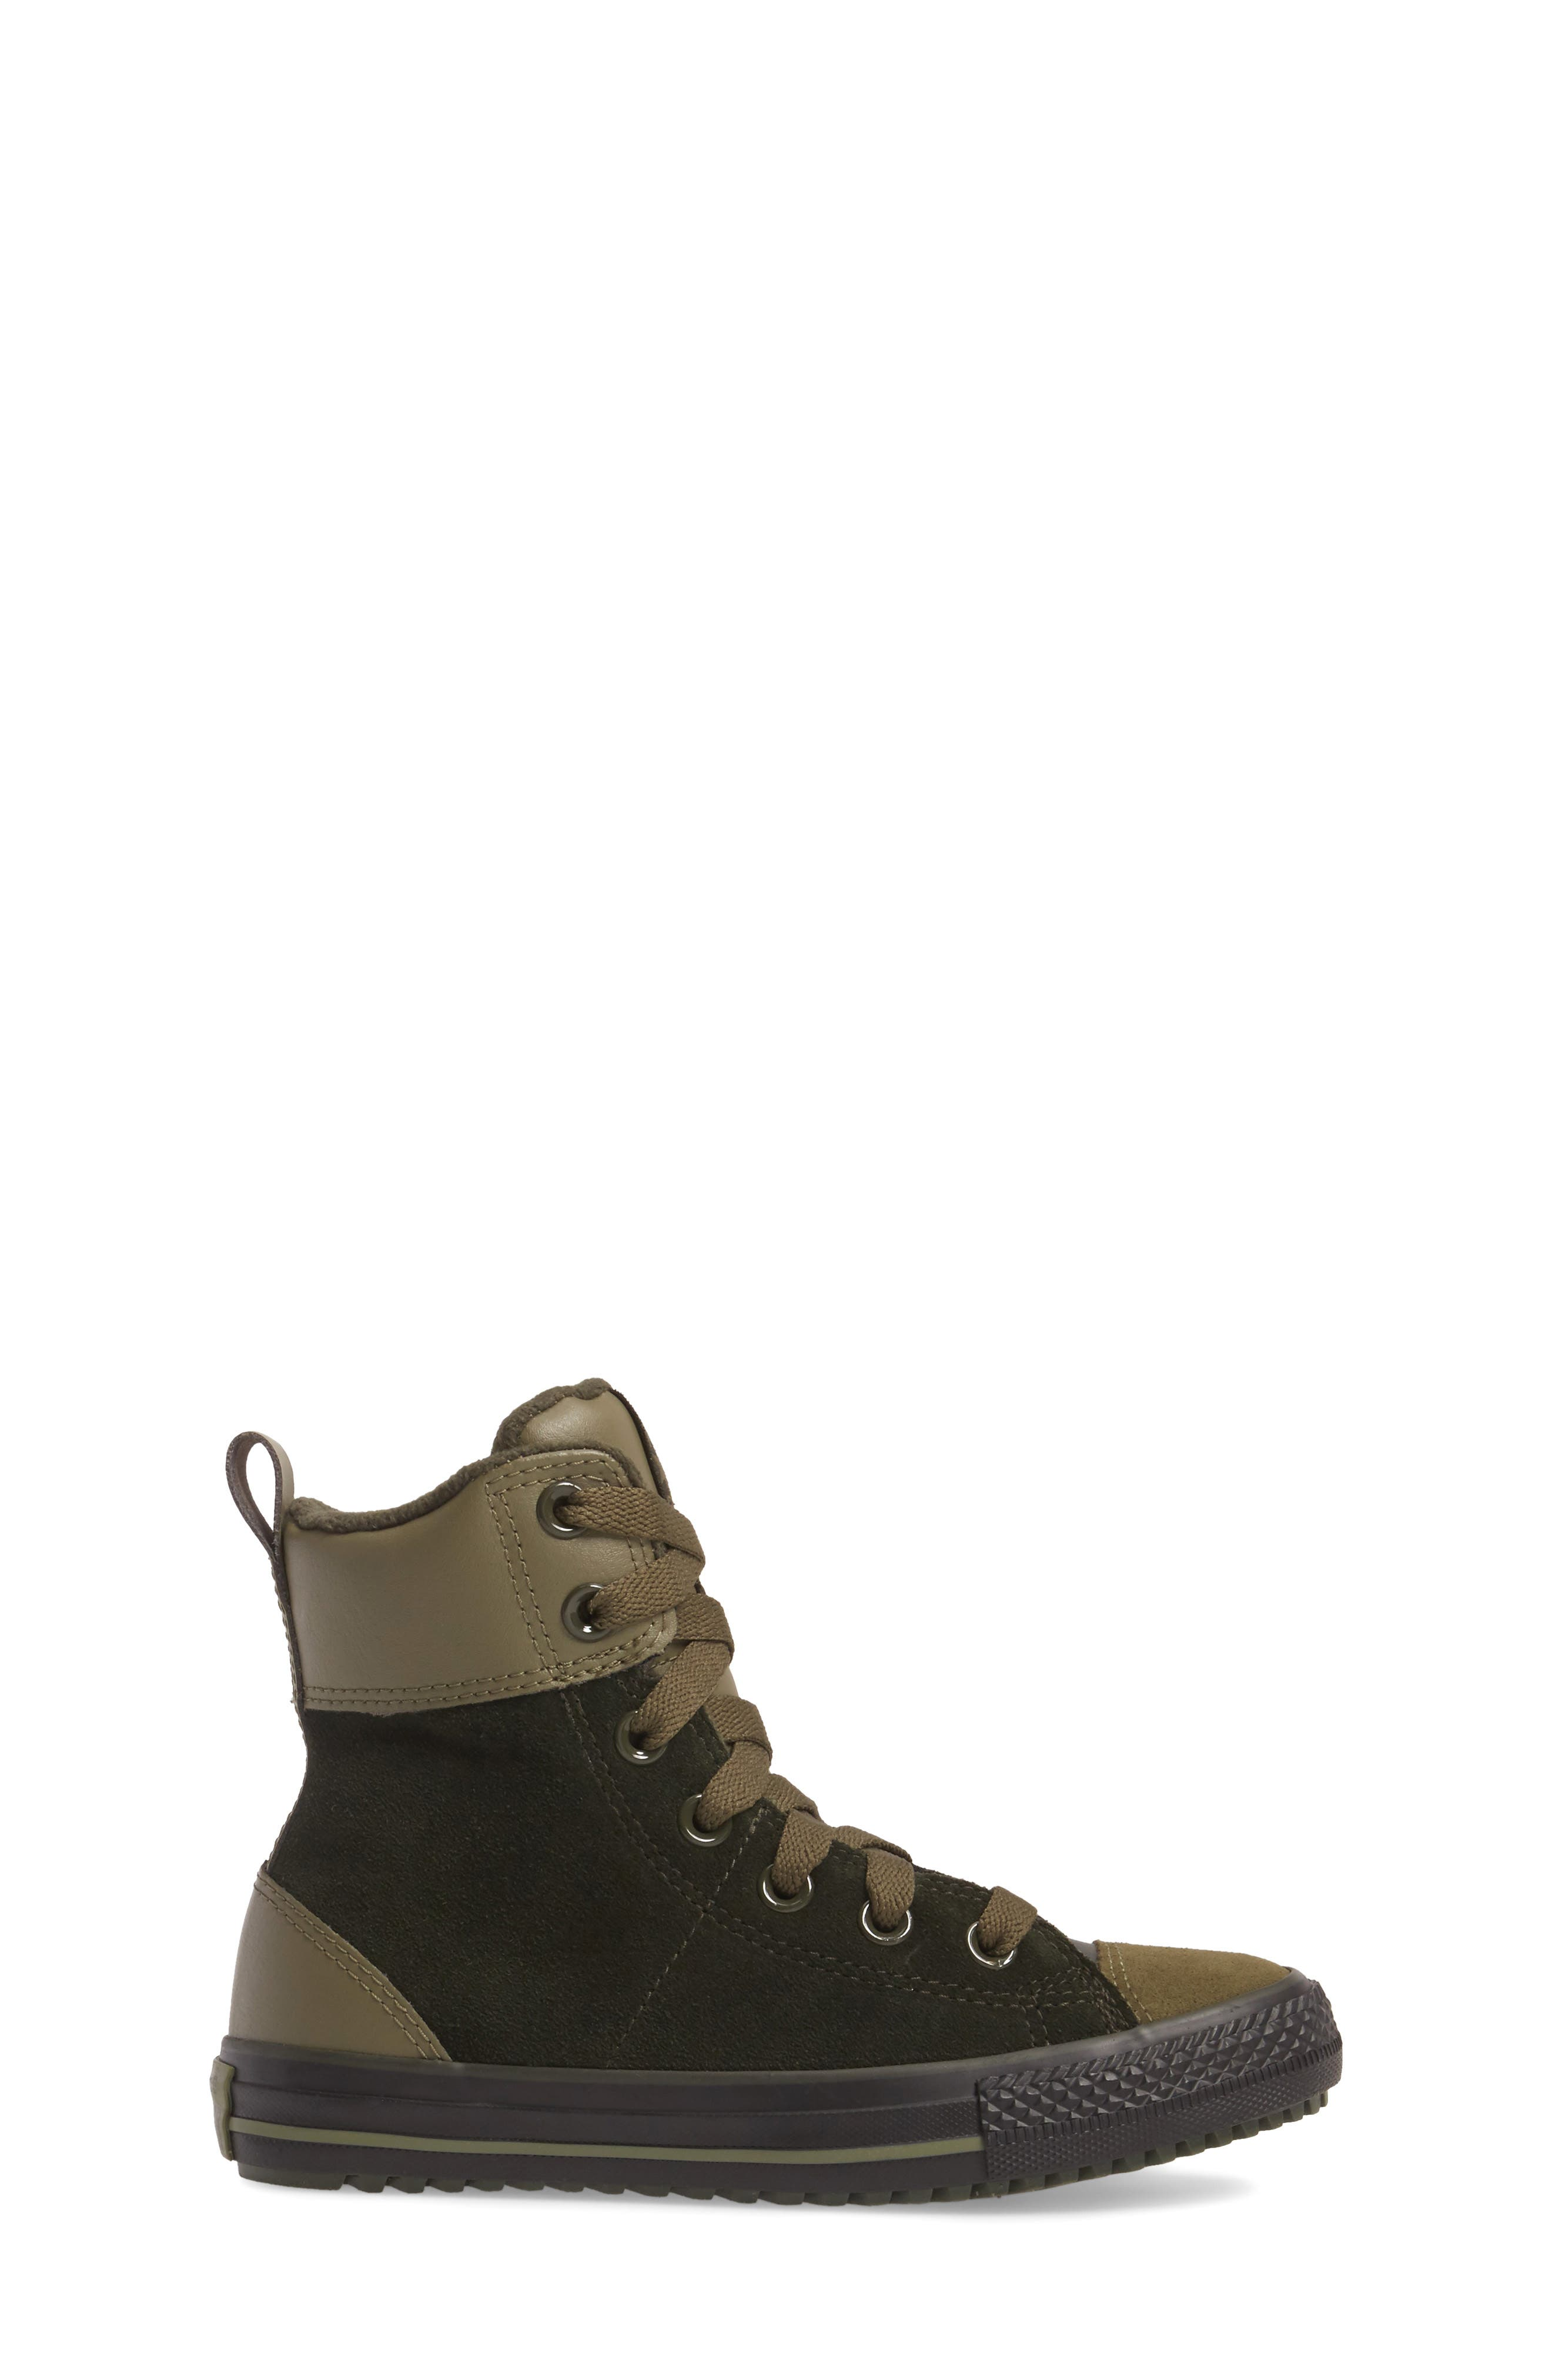 Chuck Taylor<sup>®</sup> All Star<sup>®</sup> Asphalt Sneaker Boot,                             Alternate thumbnail 3, color,                             Sequoia